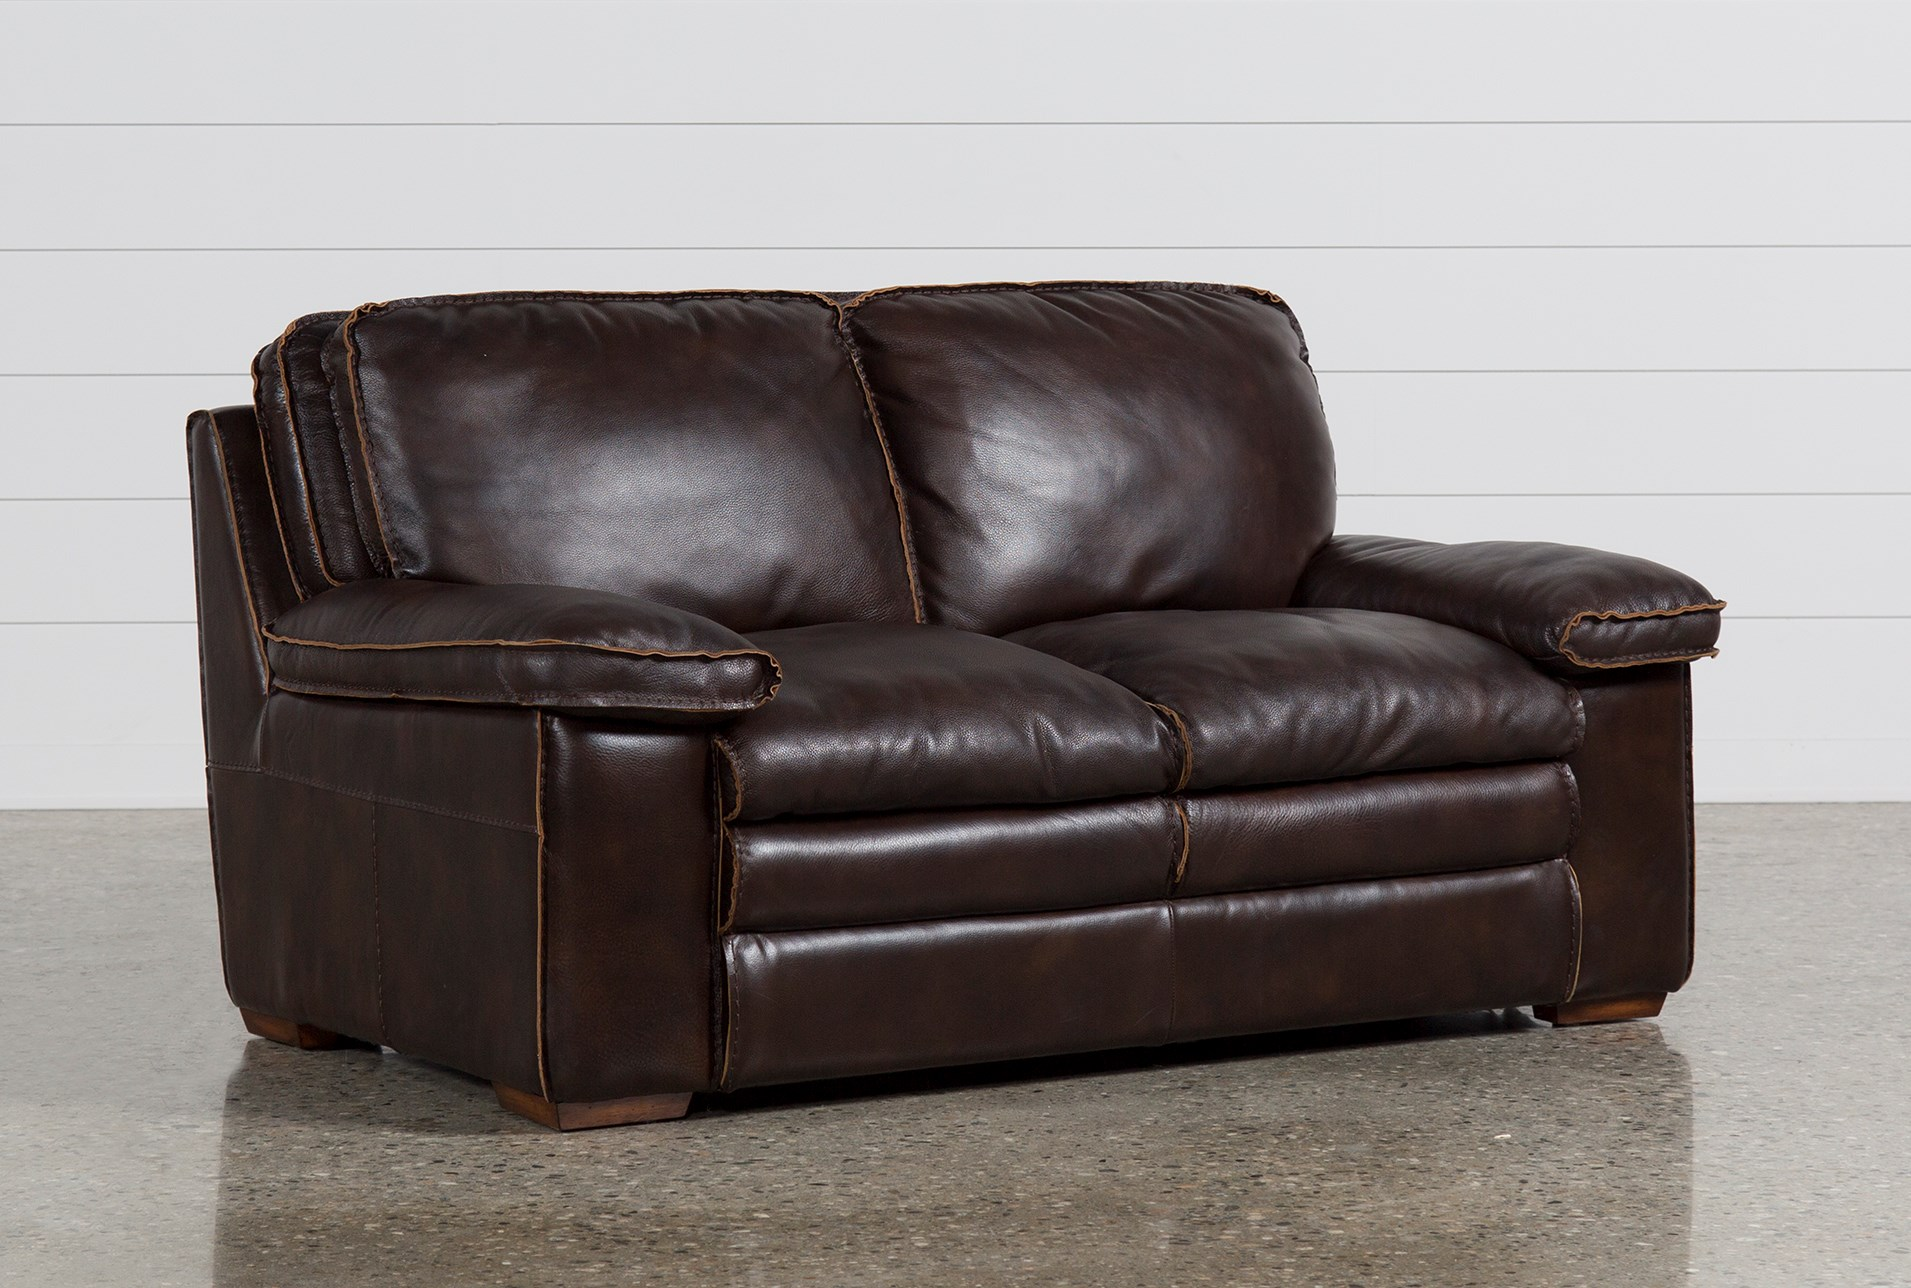 Peachy Walter Leather Loveseat Gmtry Best Dining Table And Chair Ideas Images Gmtryco